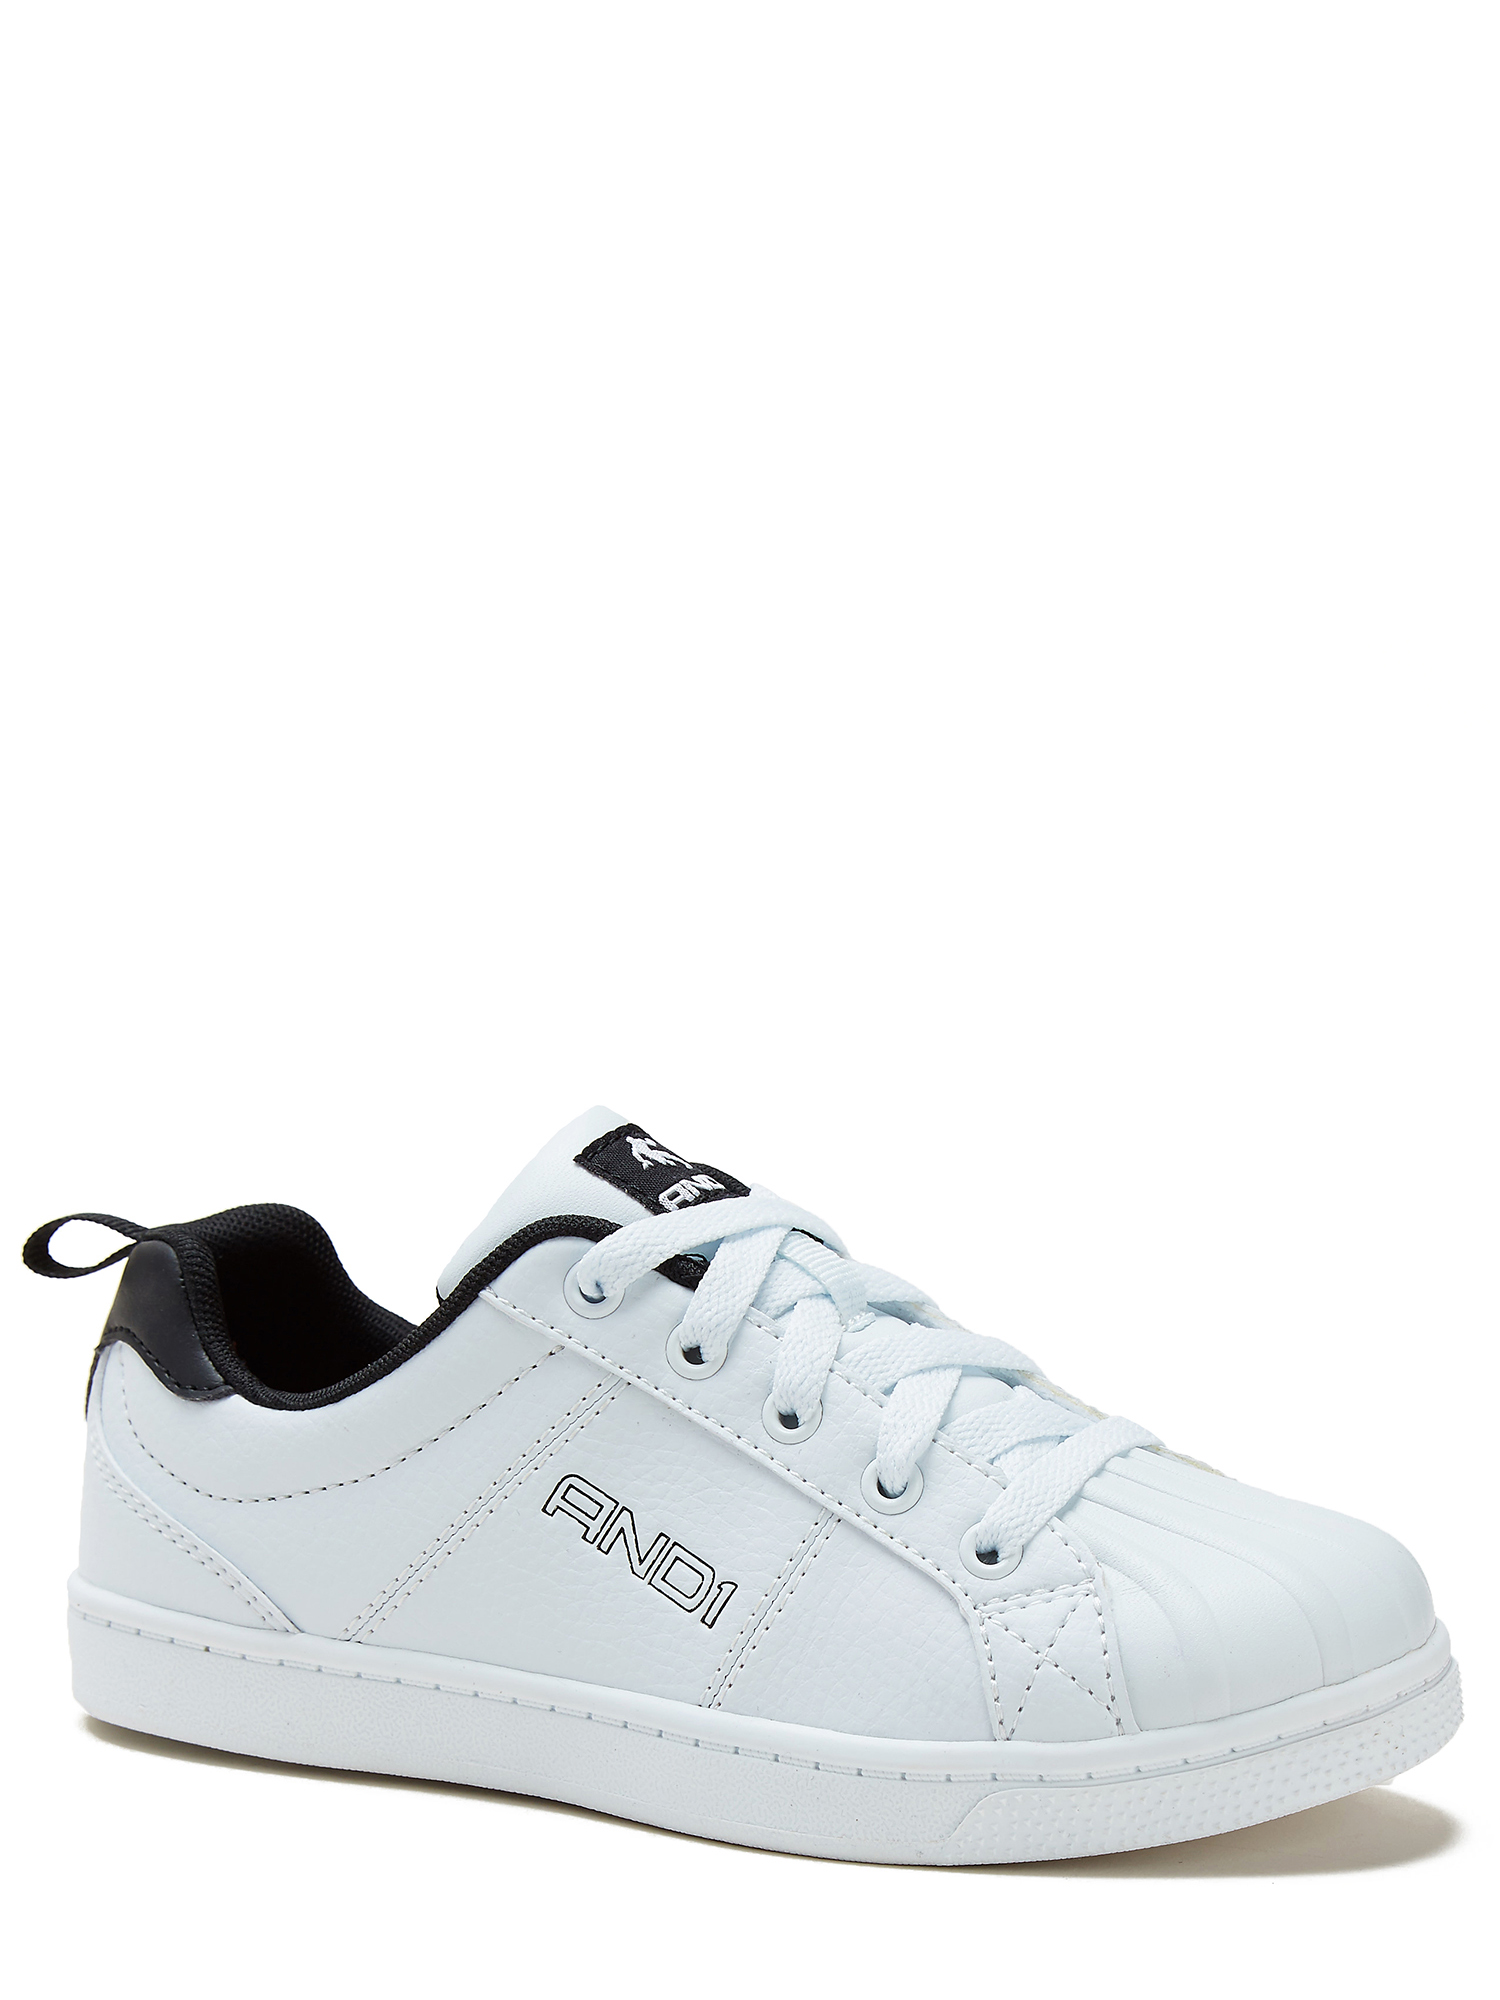 Boys' Meister Casual Court Shoe